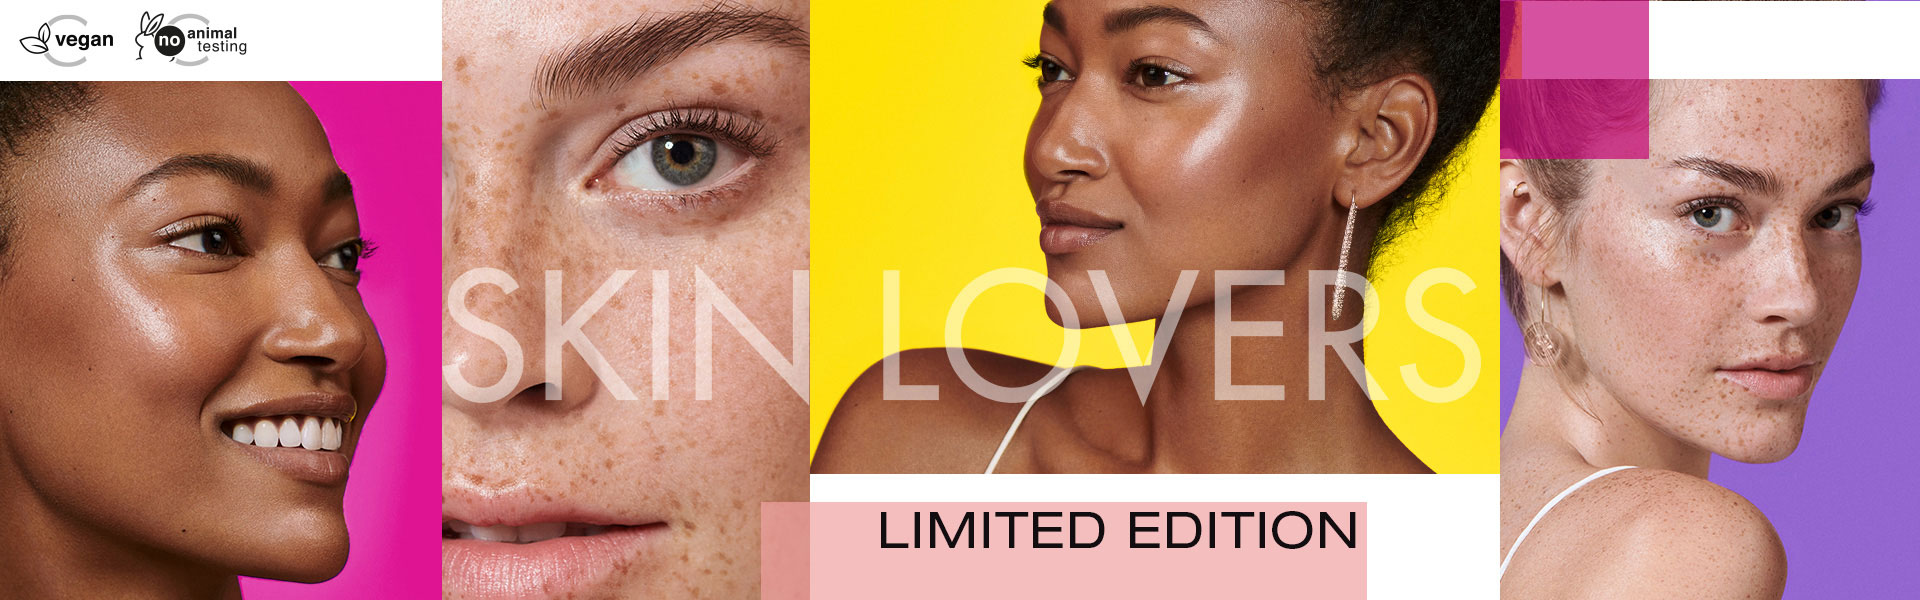 "Limited Edition ""Skin Lovers"""